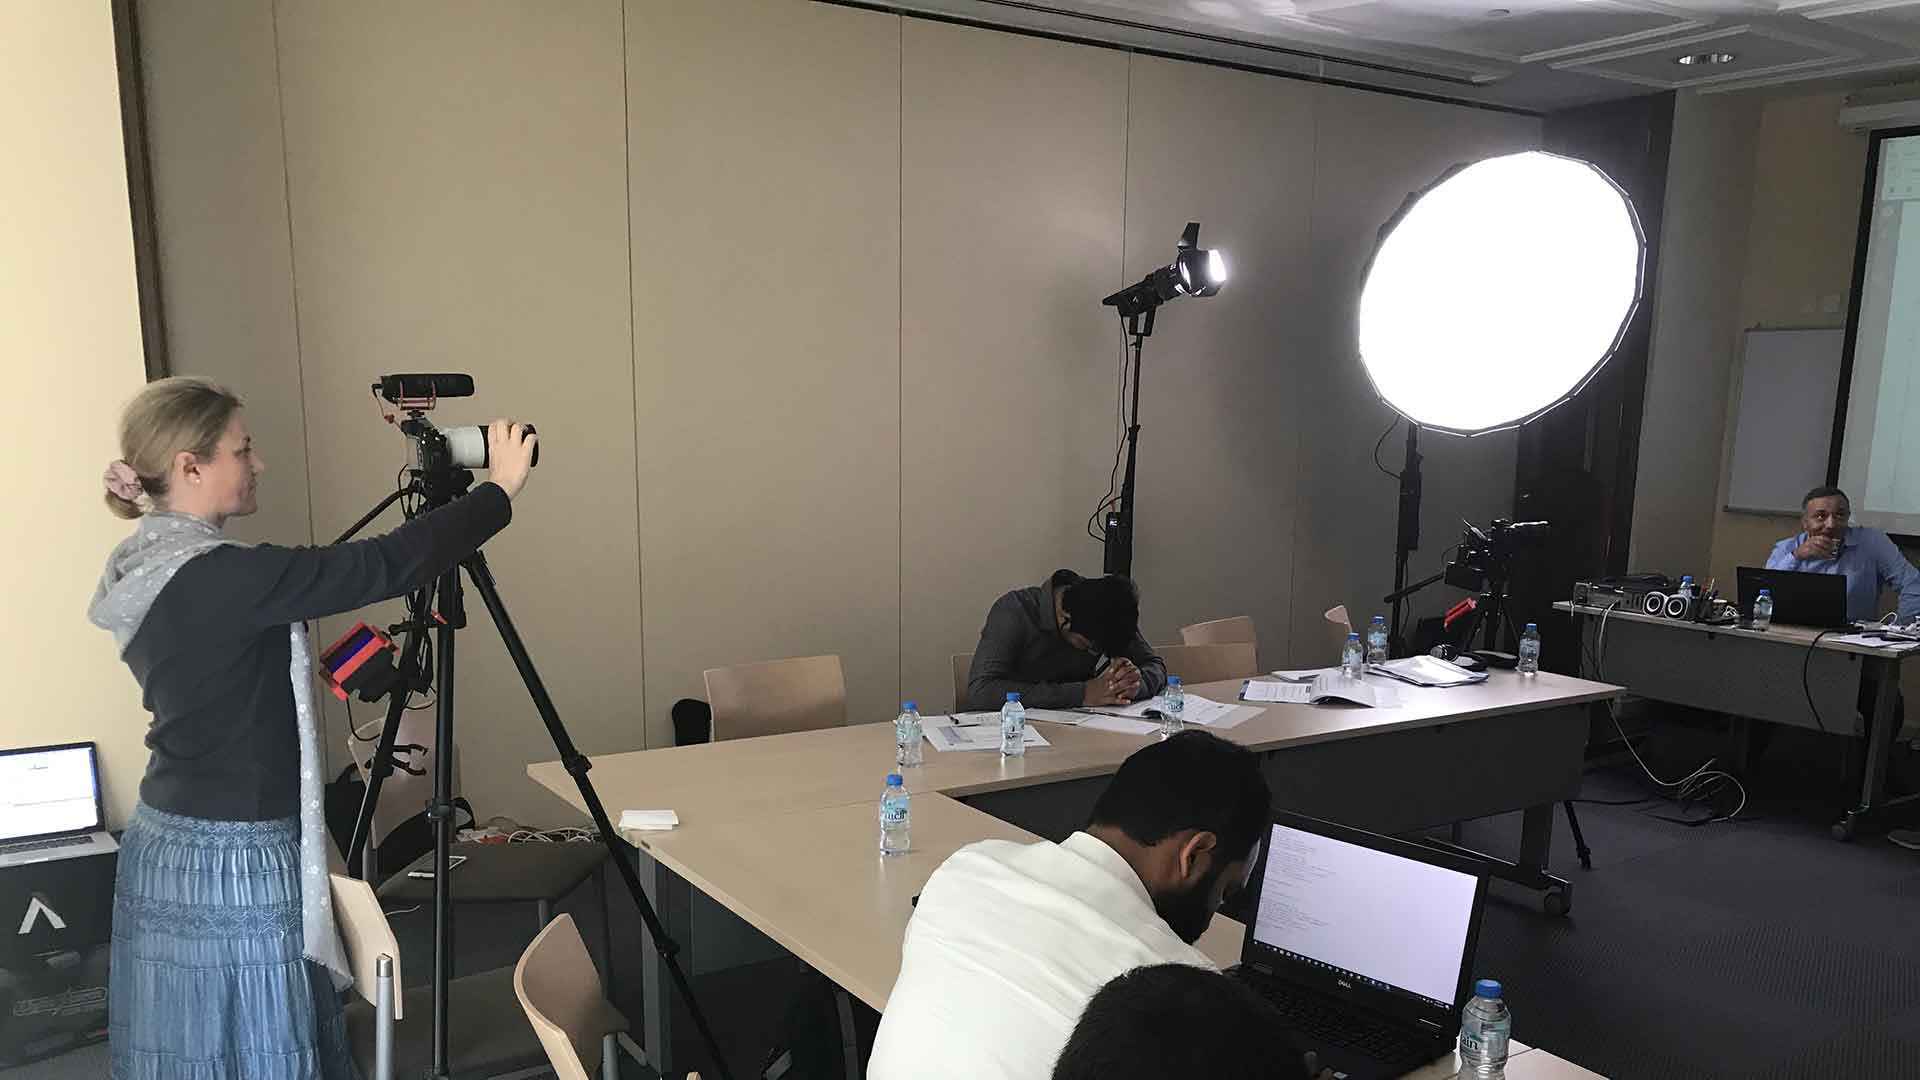 How To Make A Training Video - Tips For Staff - FIVE Pictures